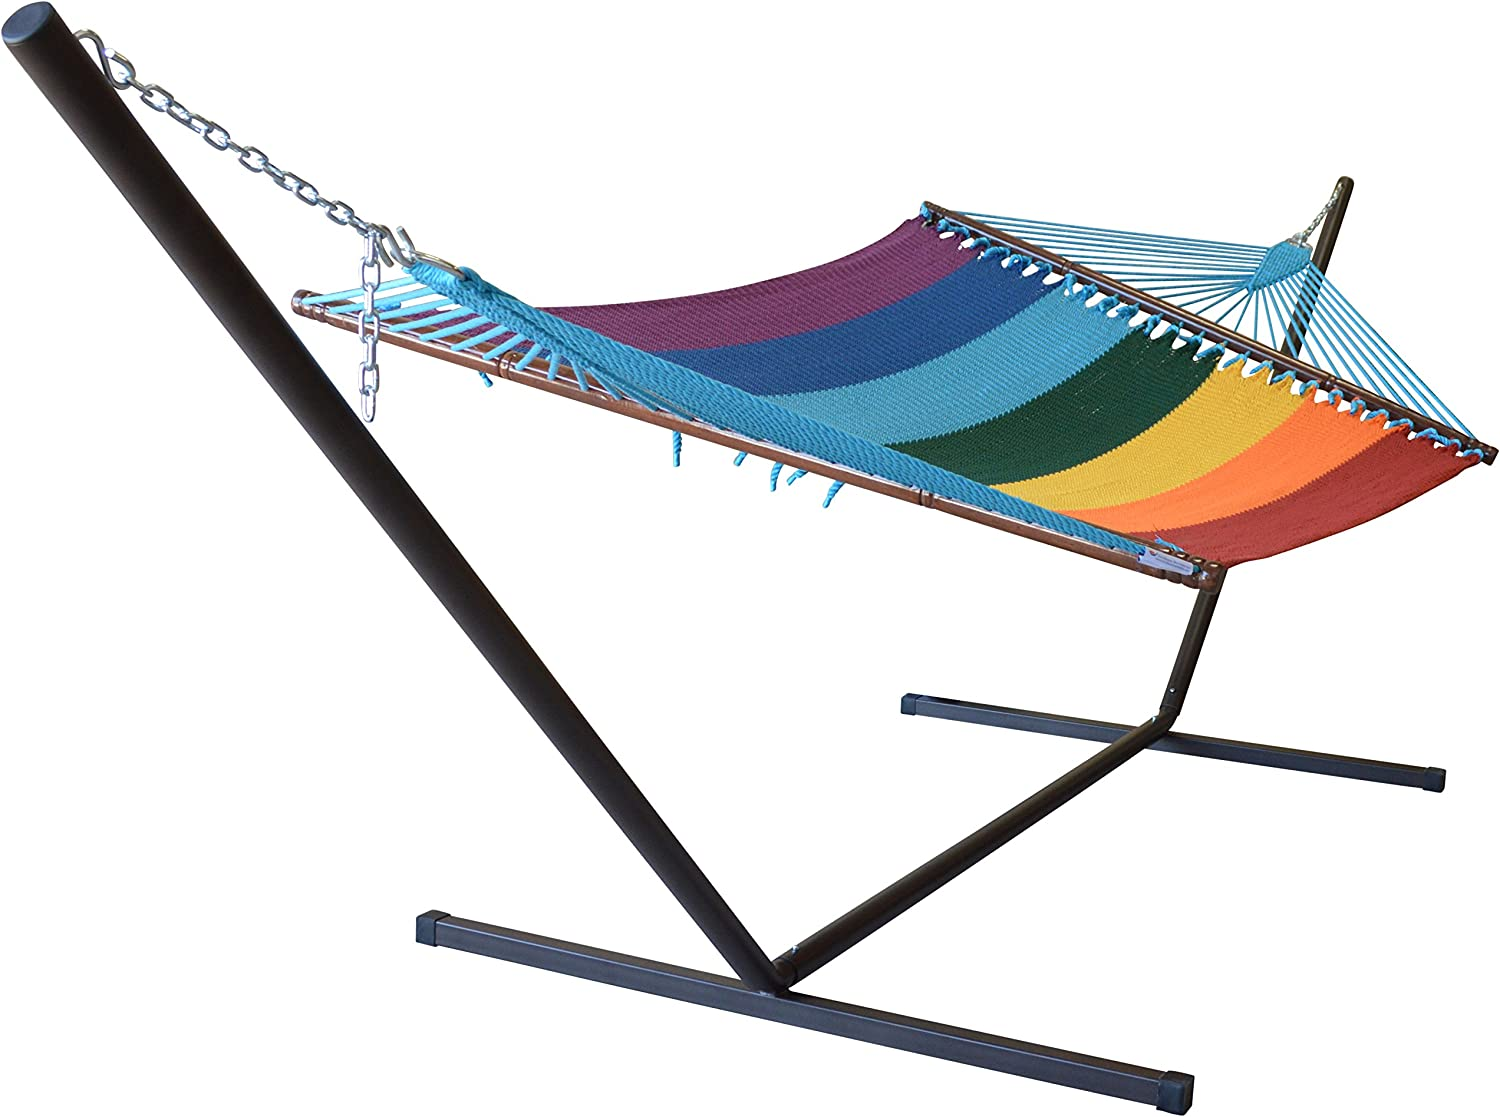 Caribbean Hammocks Jumbo Hammock and 15 ft Tribeam Stand - Rainbow